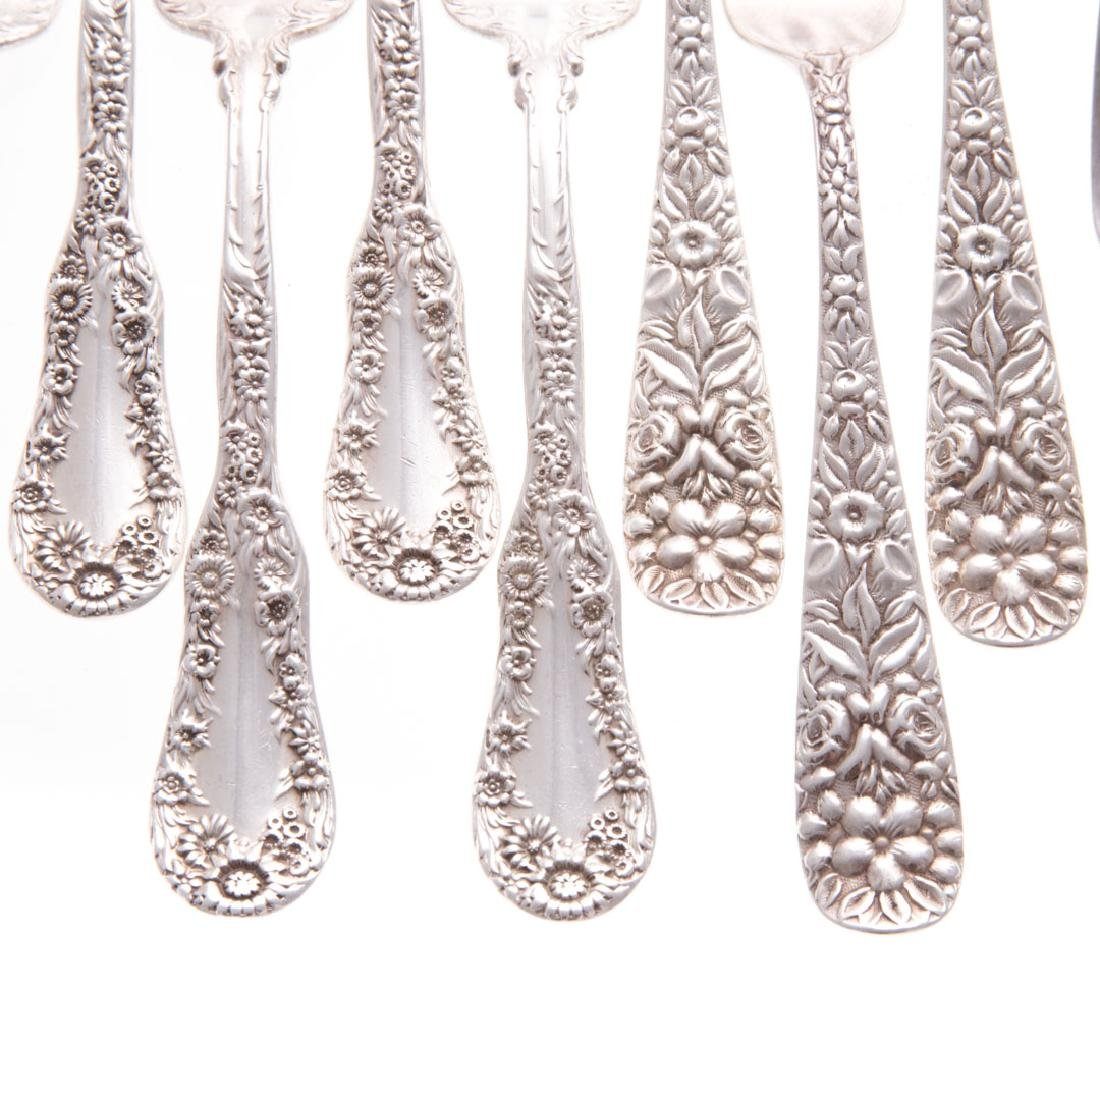 A collection of American sterling flatware - 2